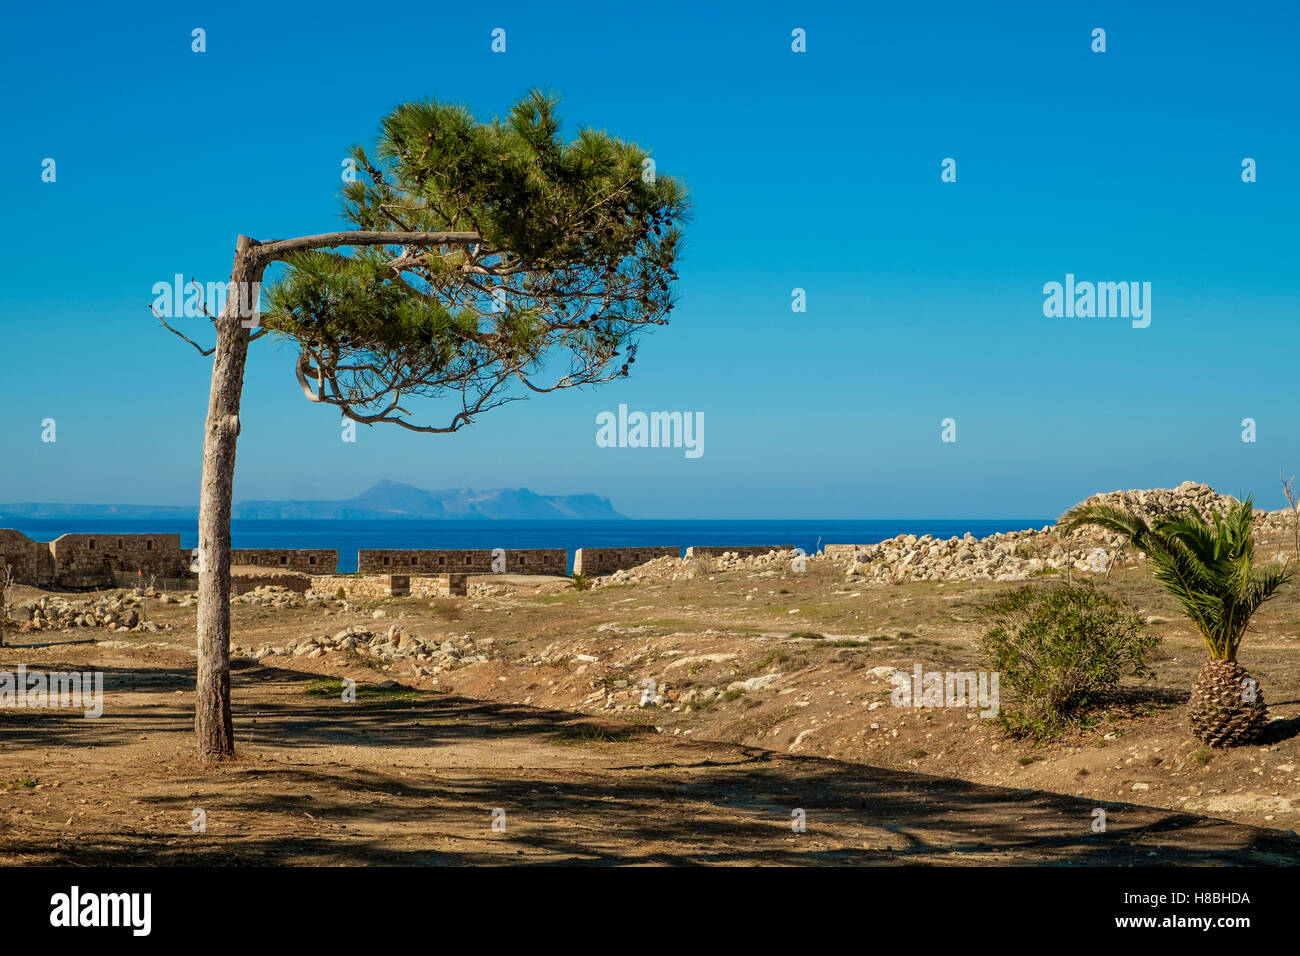 A crooked tree shaped by the prevailing wind in Rethymno on the island of Crete, Greece. Picture credit: Brian Hickey/Alamy - Stock Image